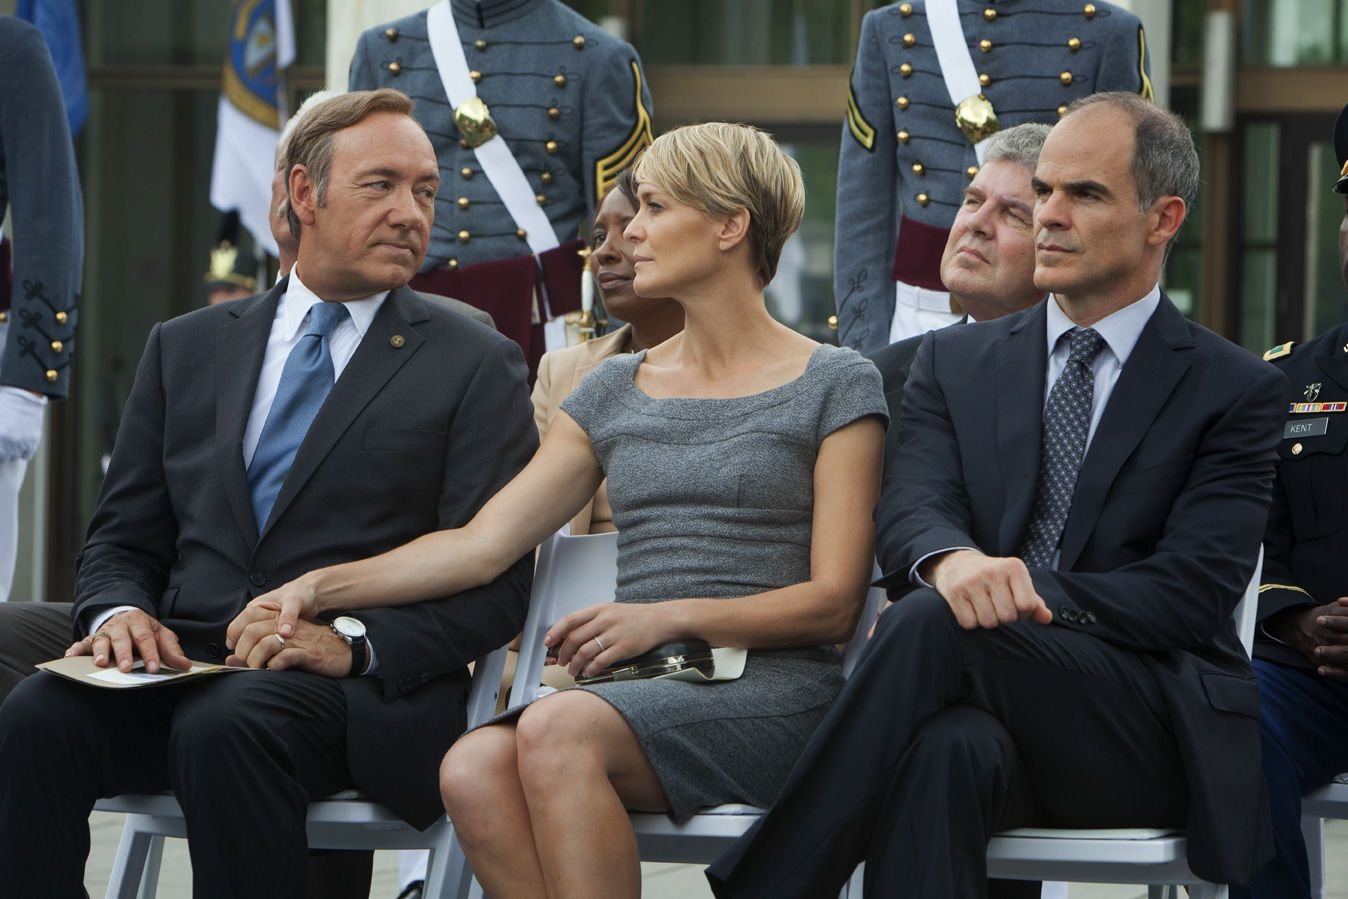 Kevin Spacey as Francis UnderwoodRobin Wright as Claire UnderwoodMichael Kelly as Doug Stamper